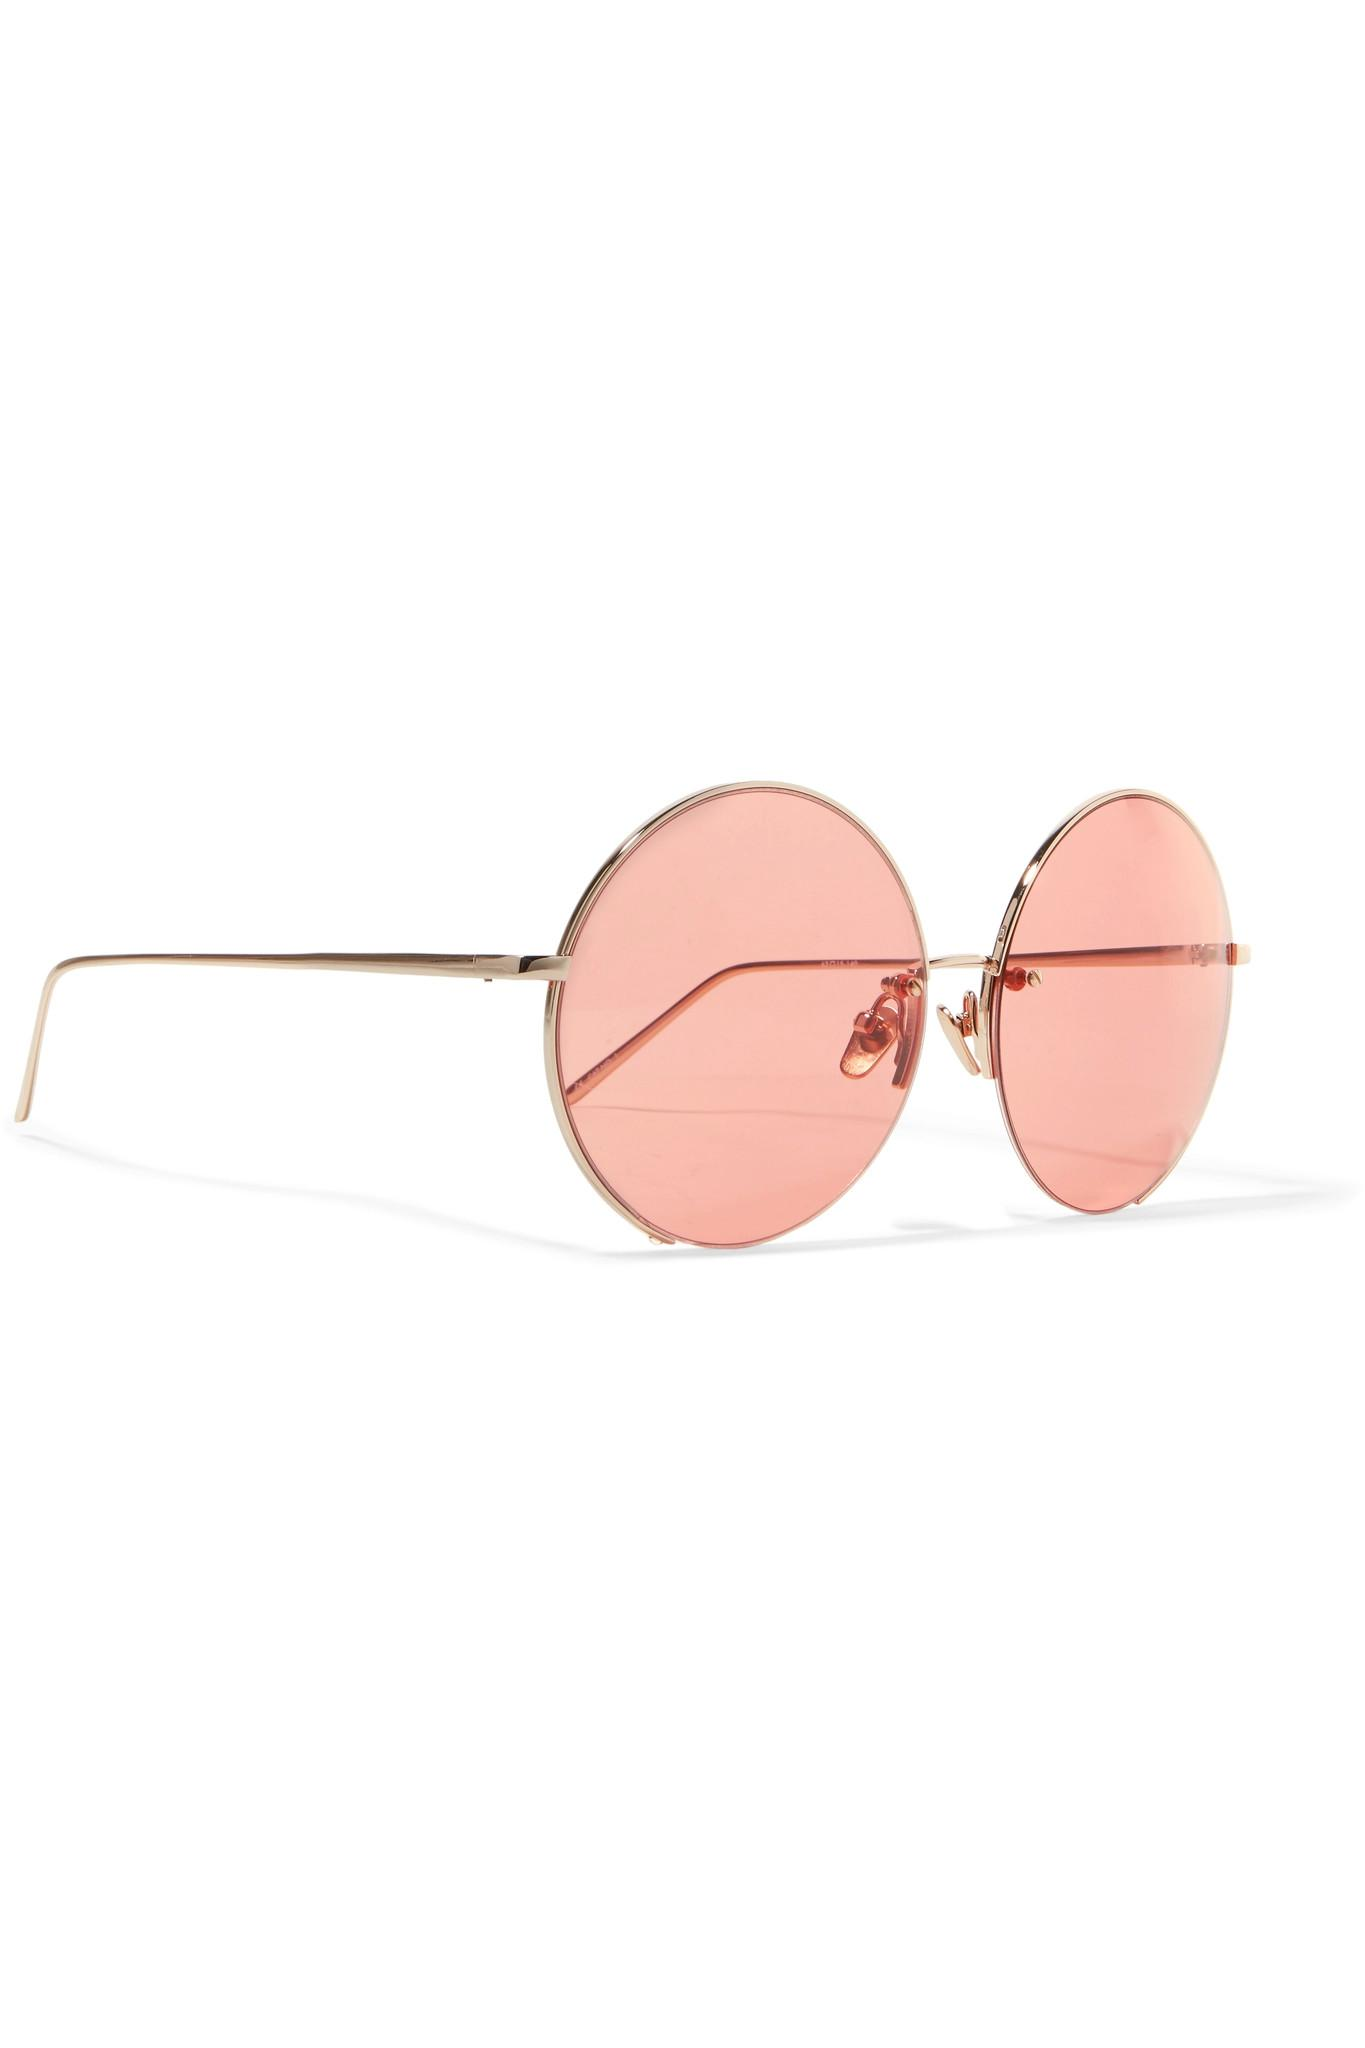 8e5d6dc1e09 Lyst - Linda Farrow Round-frame Gold-plated Mirrored Sunglasses in ...